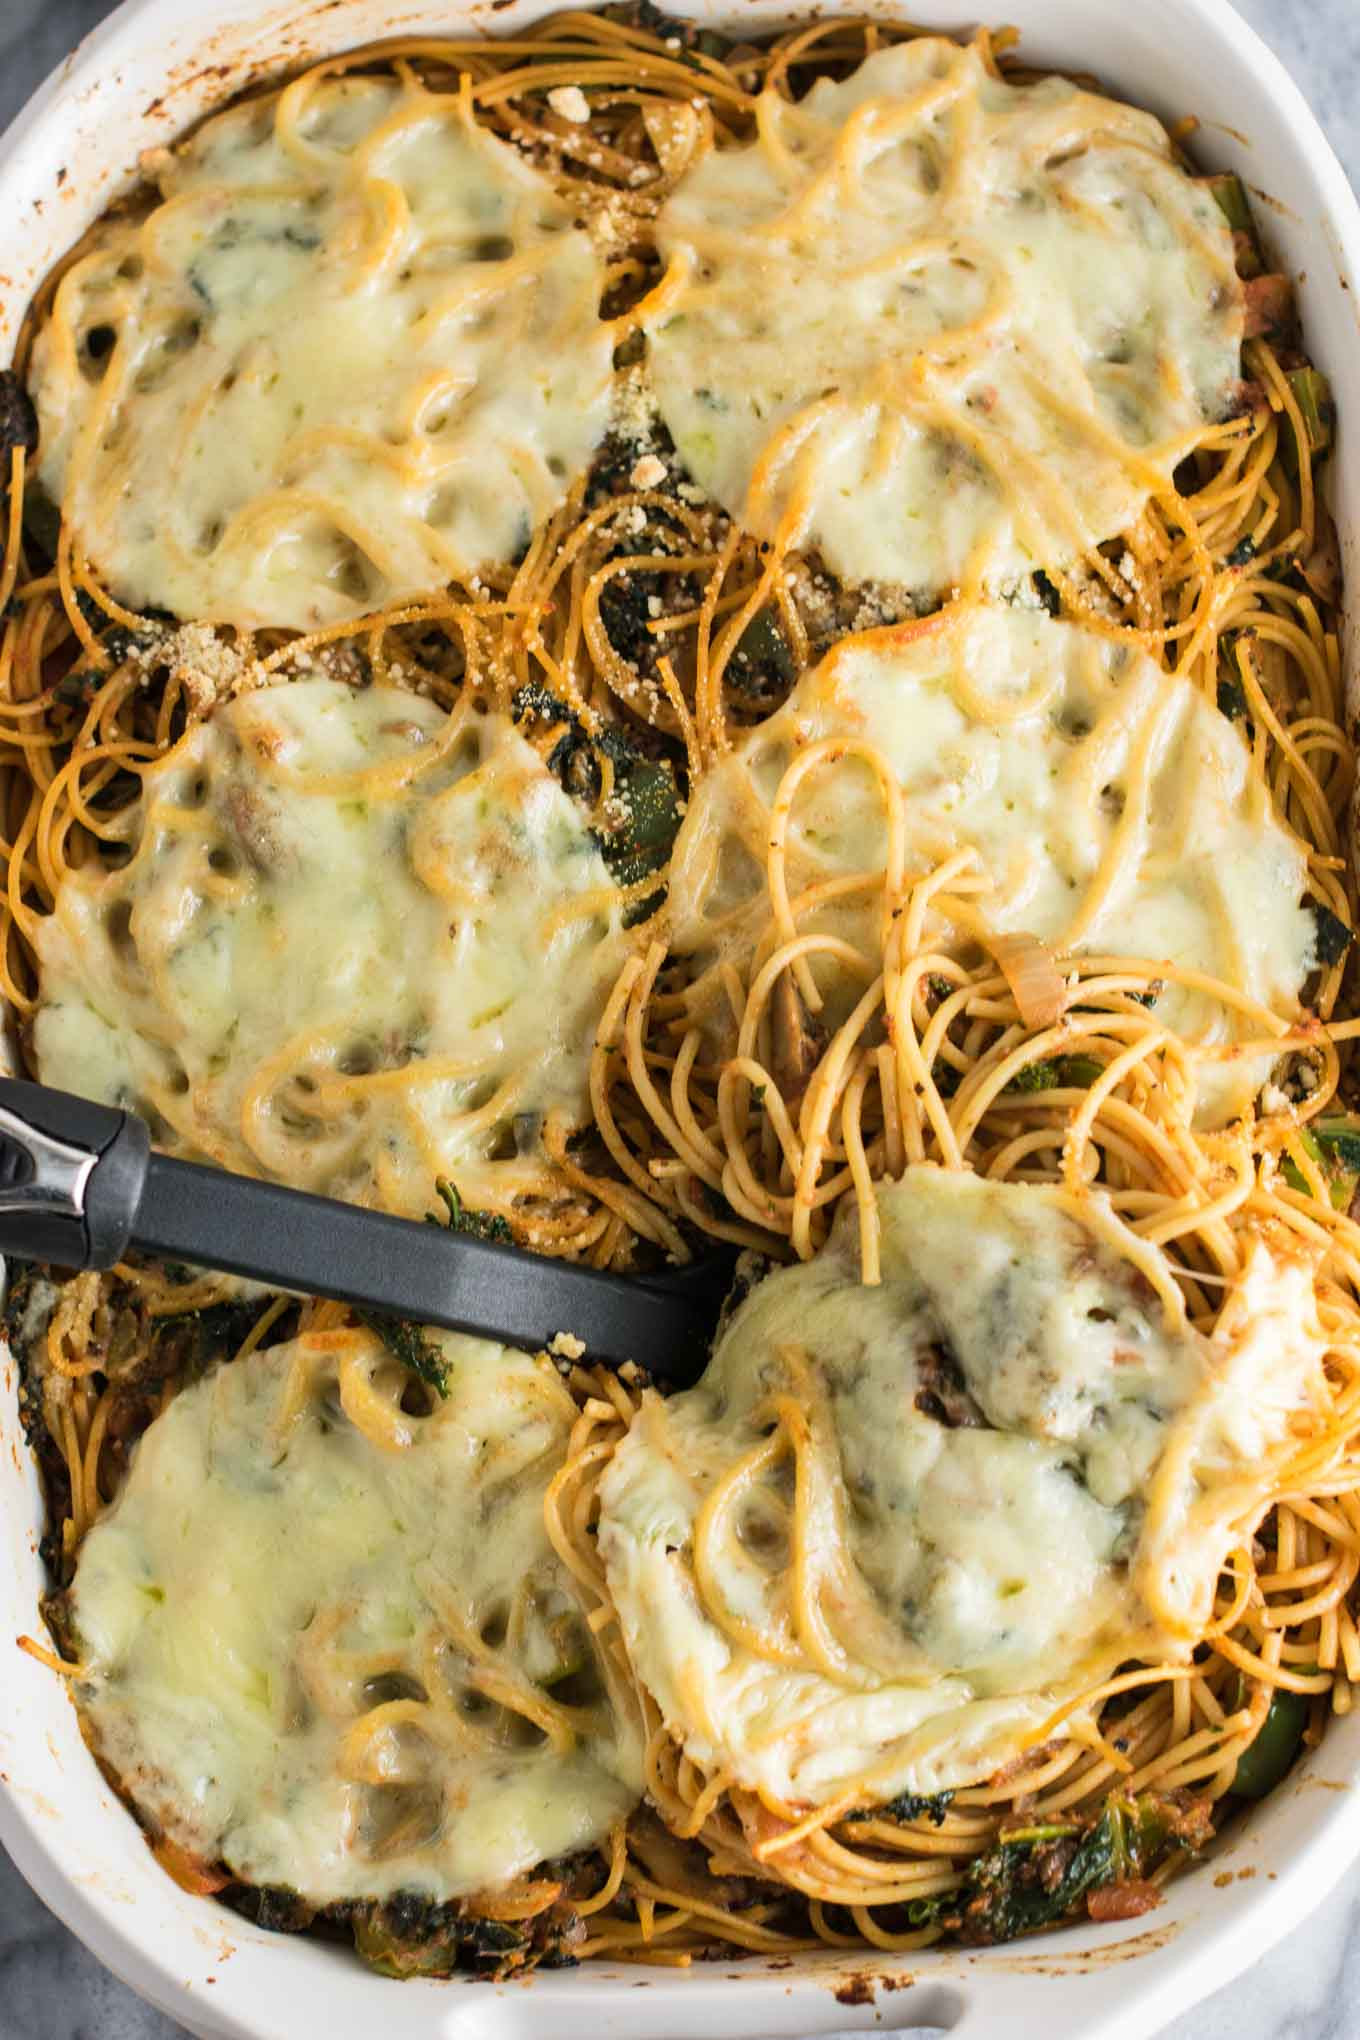 Healthy Baked Spaghetti  Healthy Baked Spaghetti Recipe with mushrooms bell